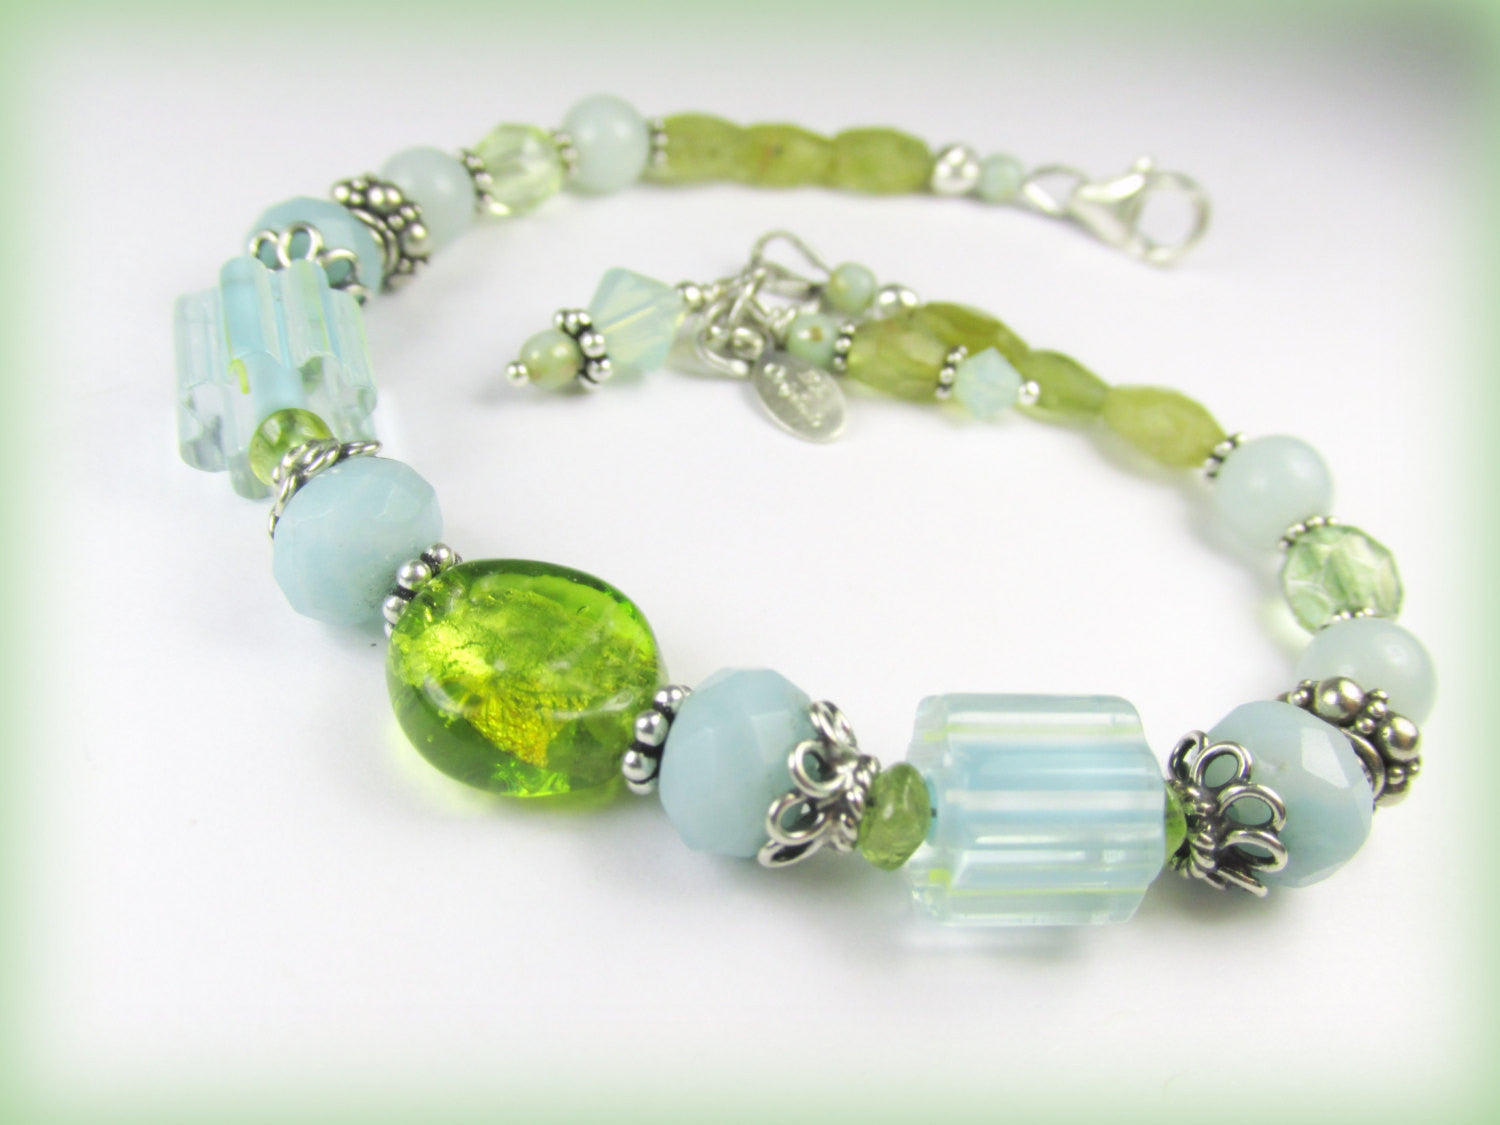 Aqua Amazonite and Green Peridot Bracelet with Murano and Cane Glass Lampwork Beads - Odyssey Creations